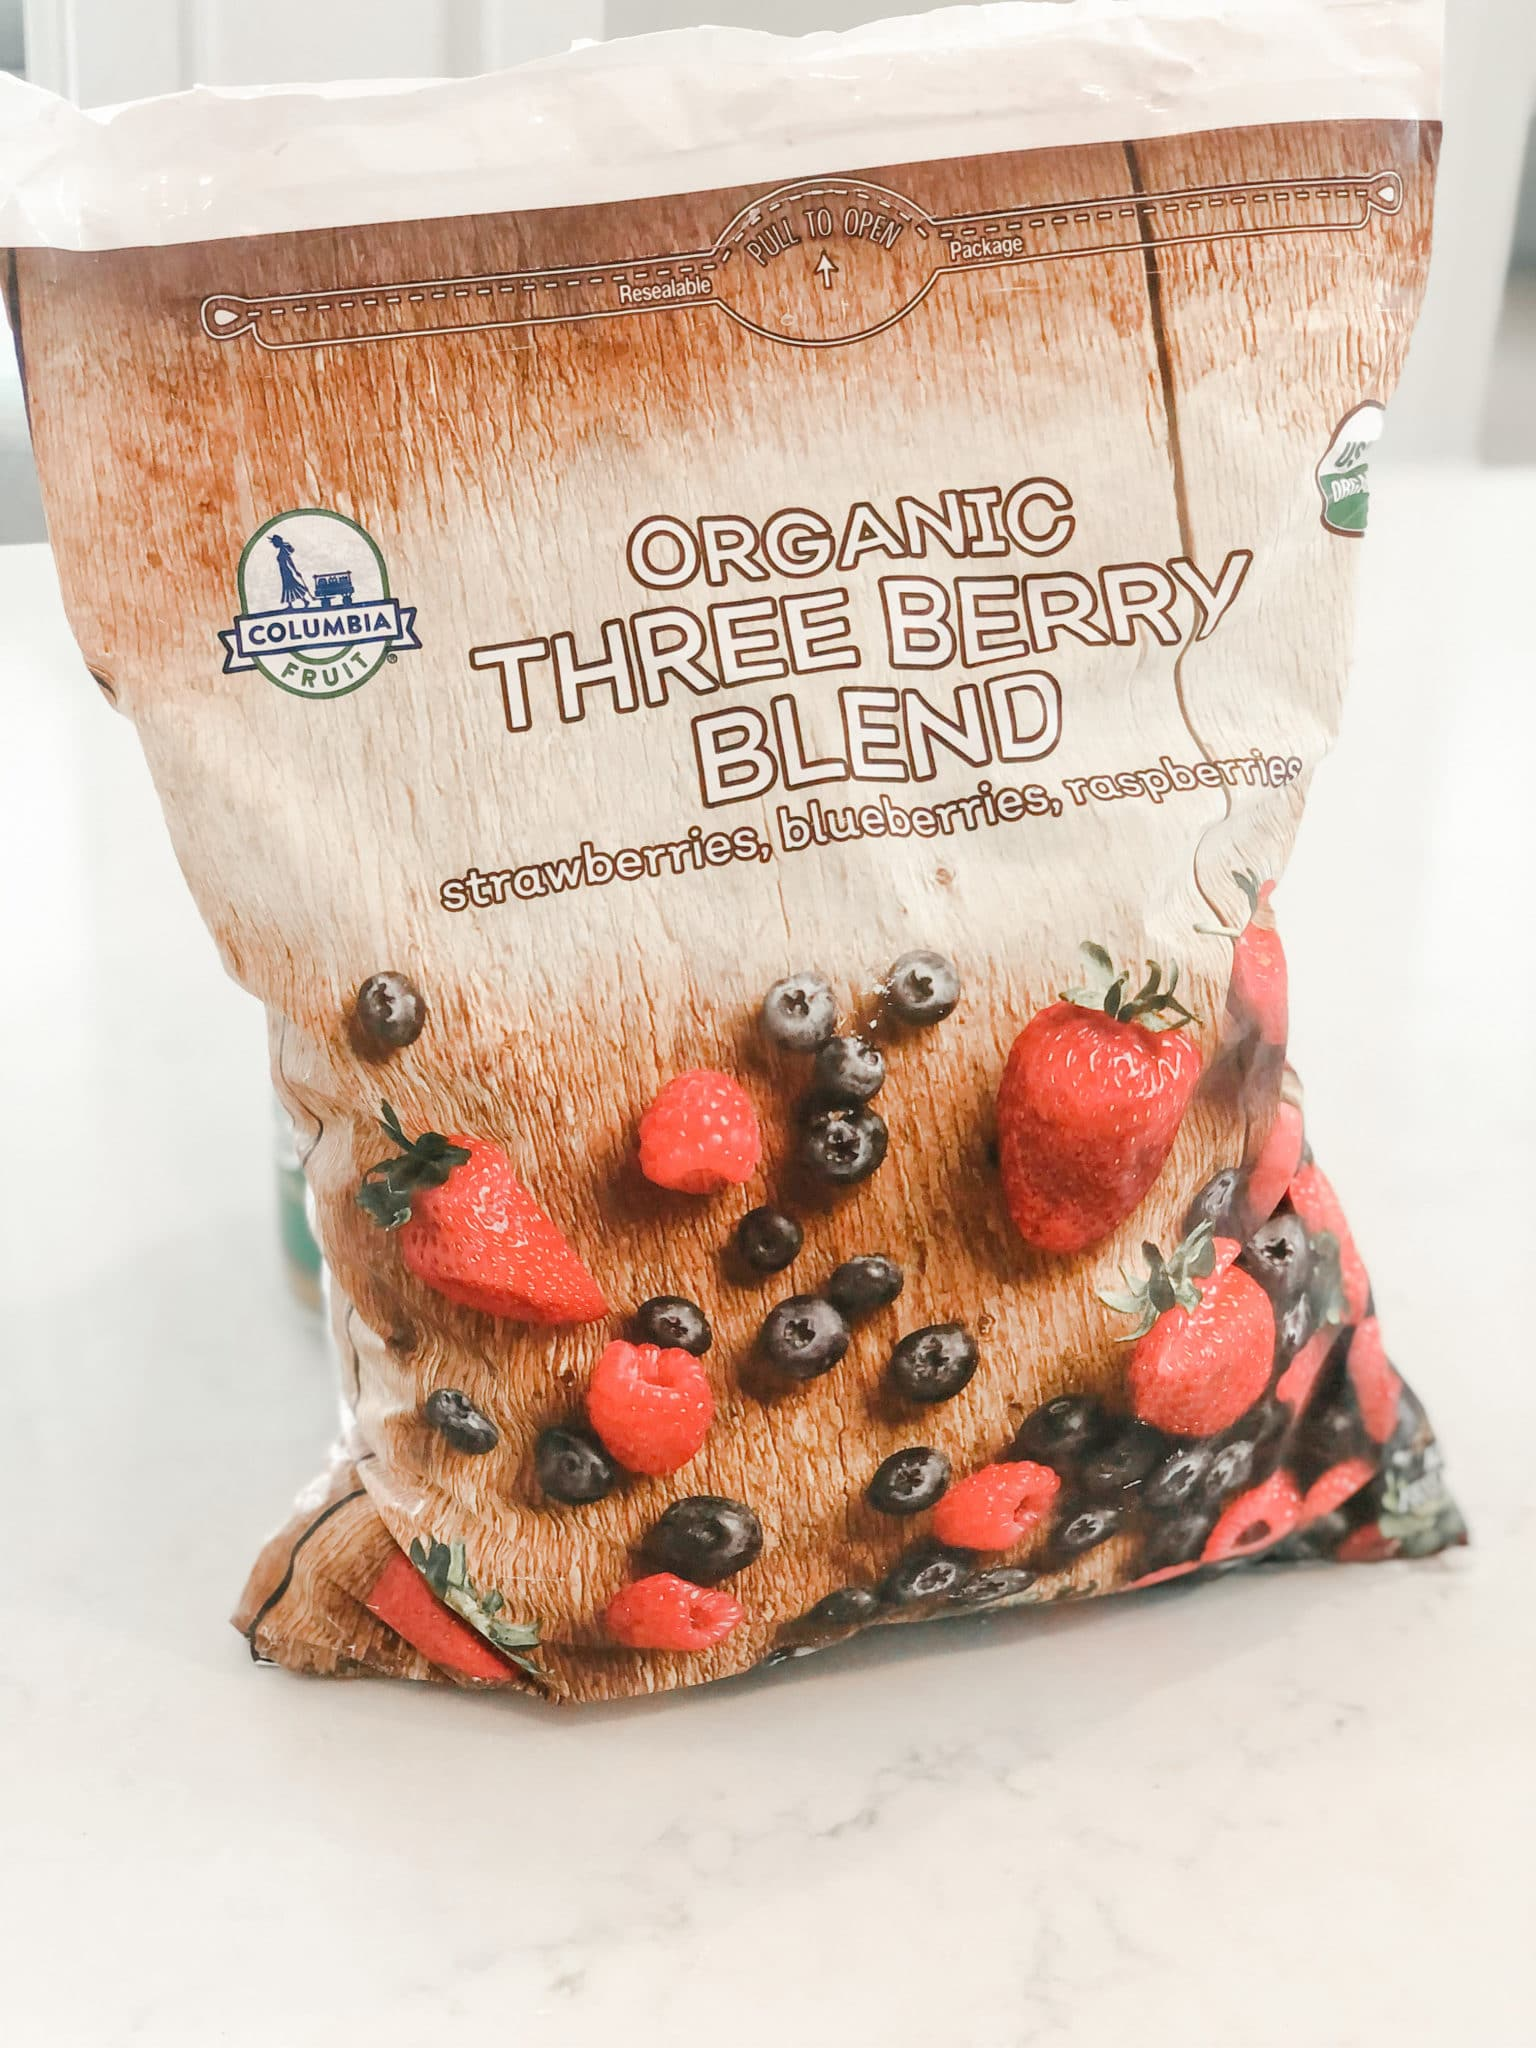 Photo of Organic Three Berry Blend from Costco